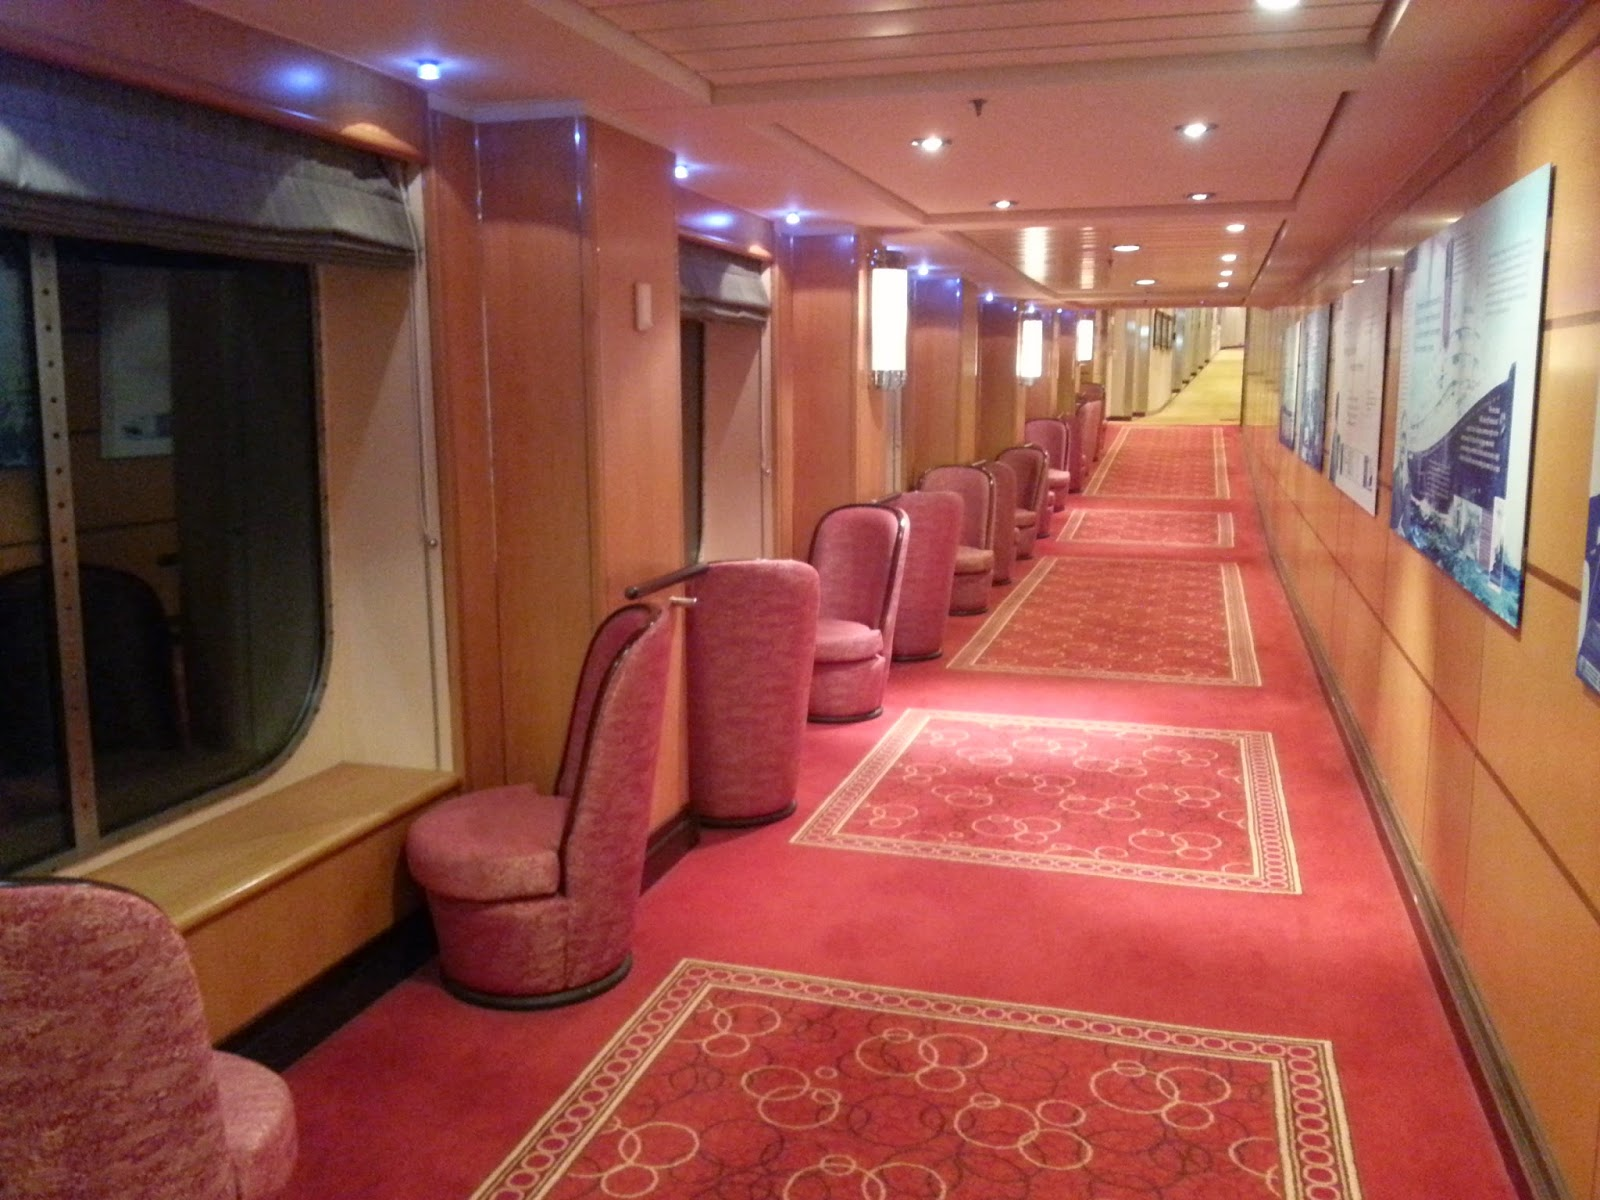 Queen Mary 2 (QM2) - Deck 3L Corridor